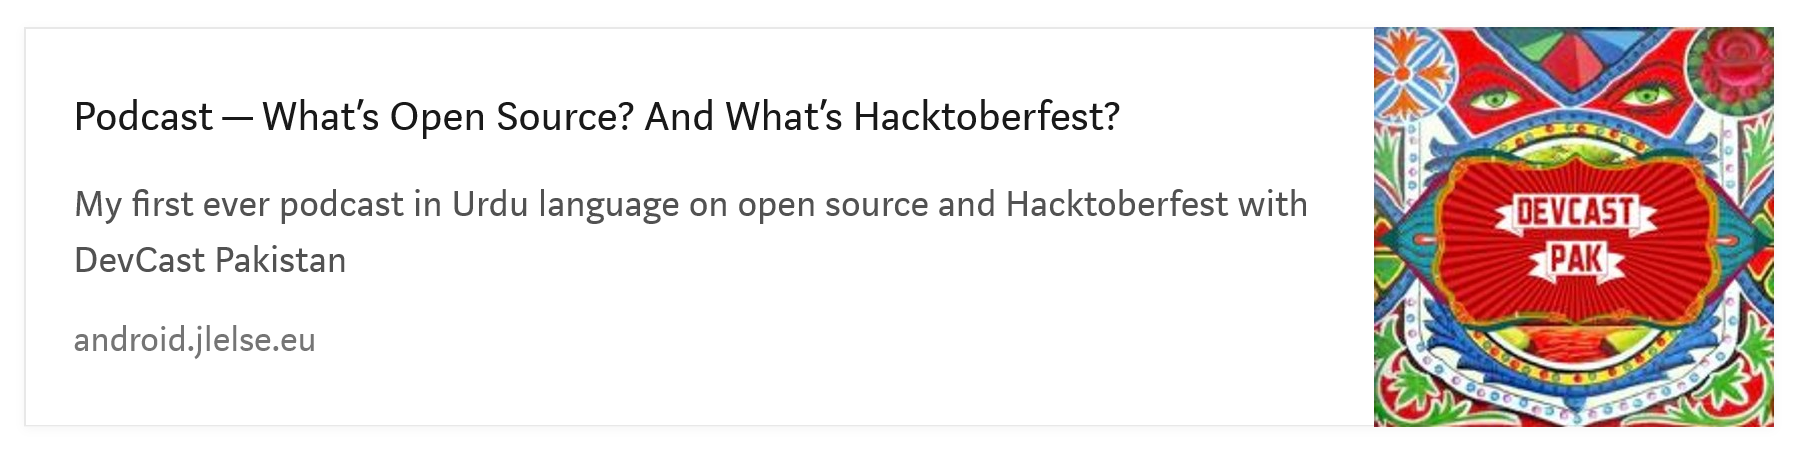 Podcast - What's Open Source and Whats Hacktoberfest?